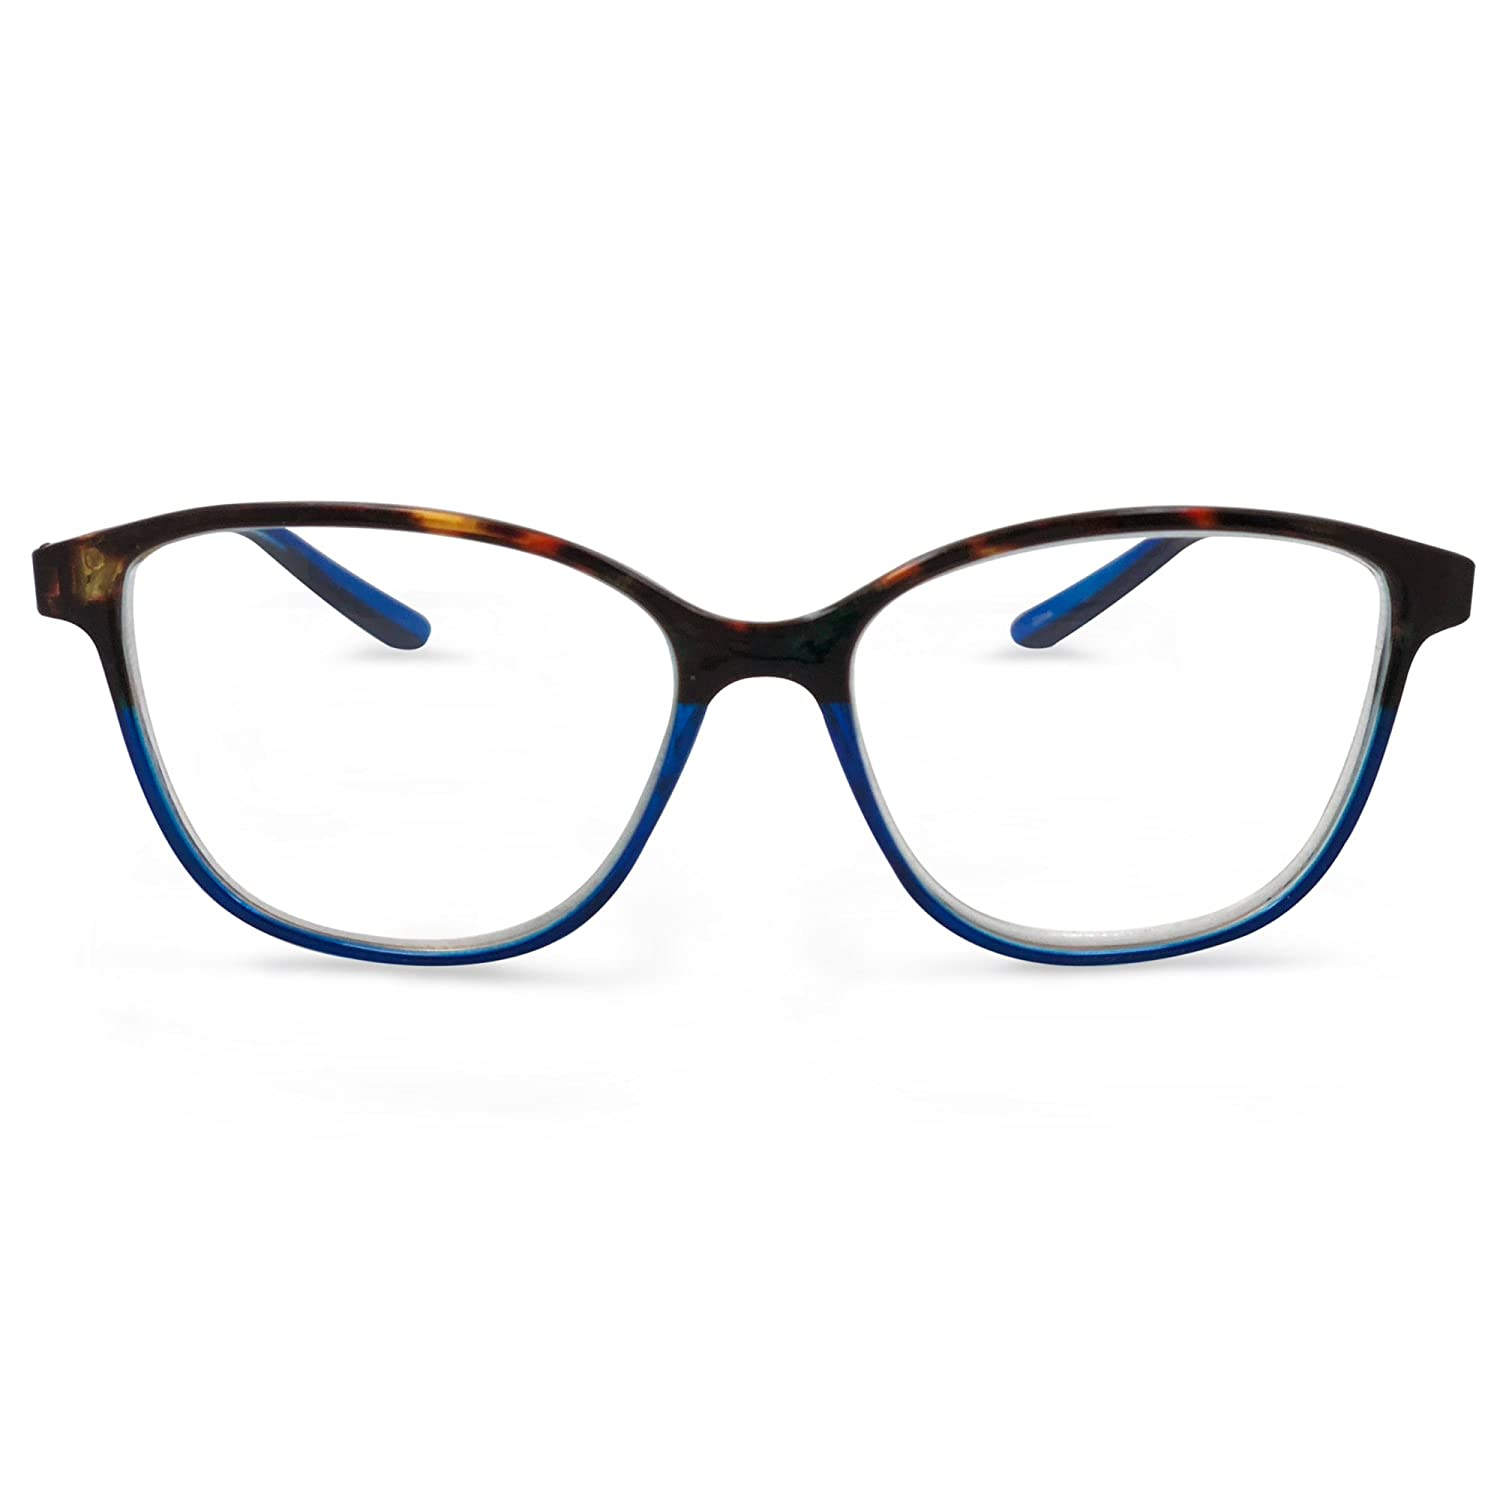 b83c932aee4e Amazon.com  In Style Eyes Cateye Two Tone Reading Glasses Tortoise Blue  1.00  Clothing